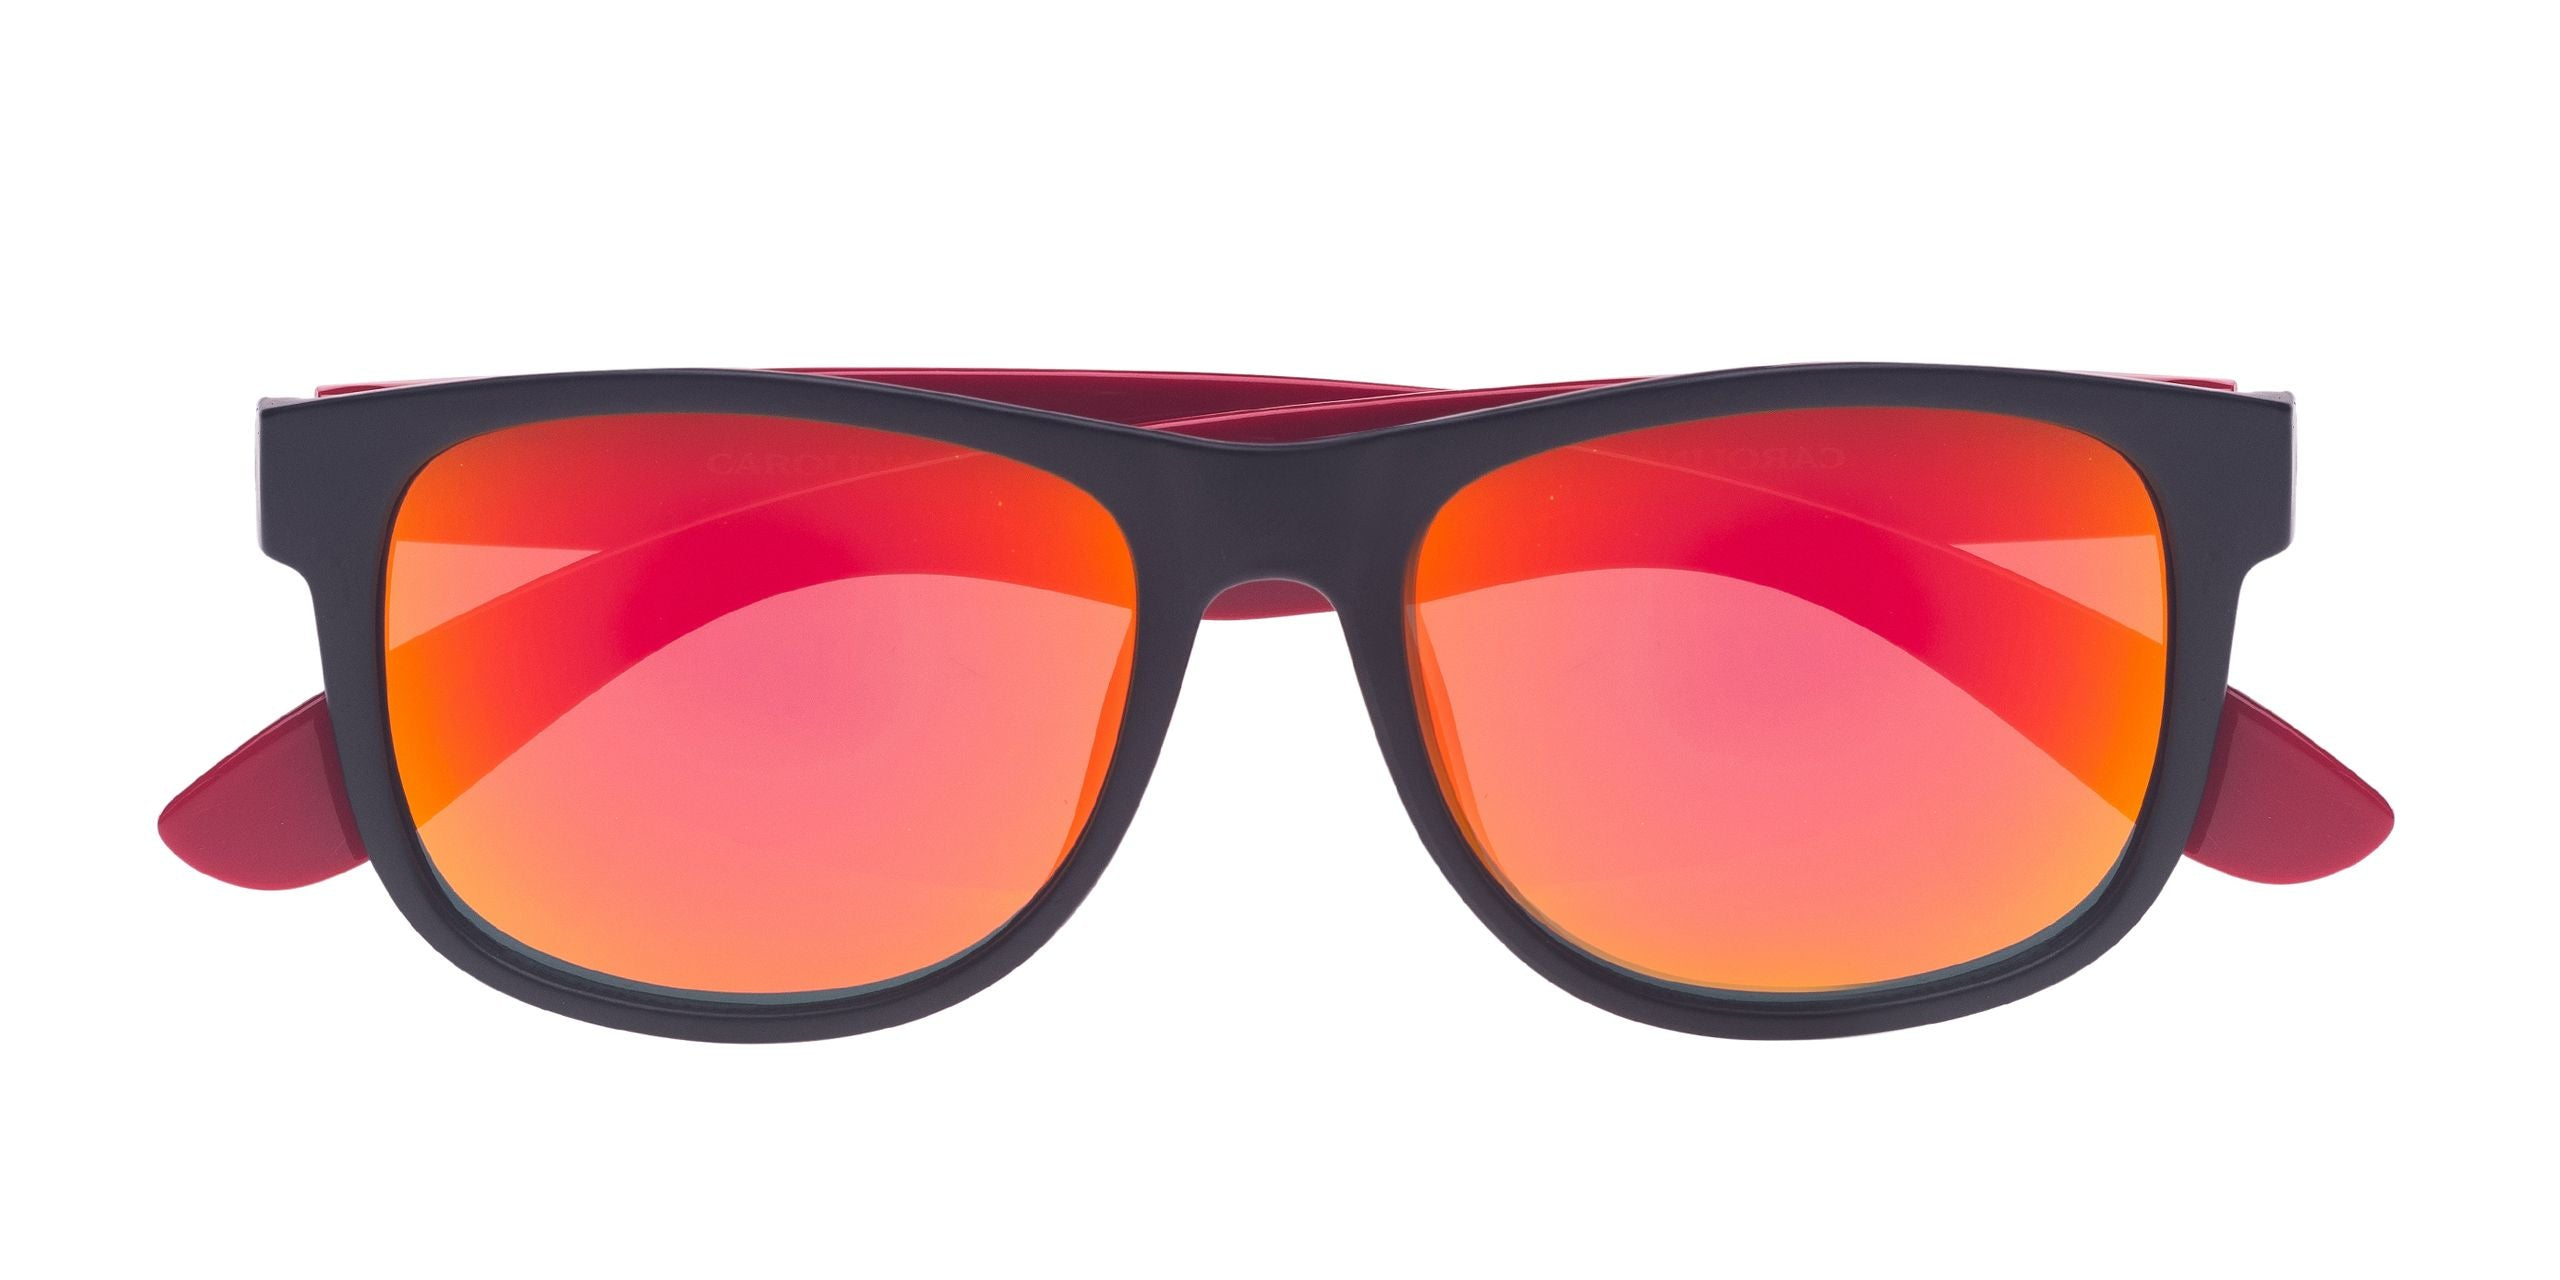 FRAME Black LENS Red Mirror